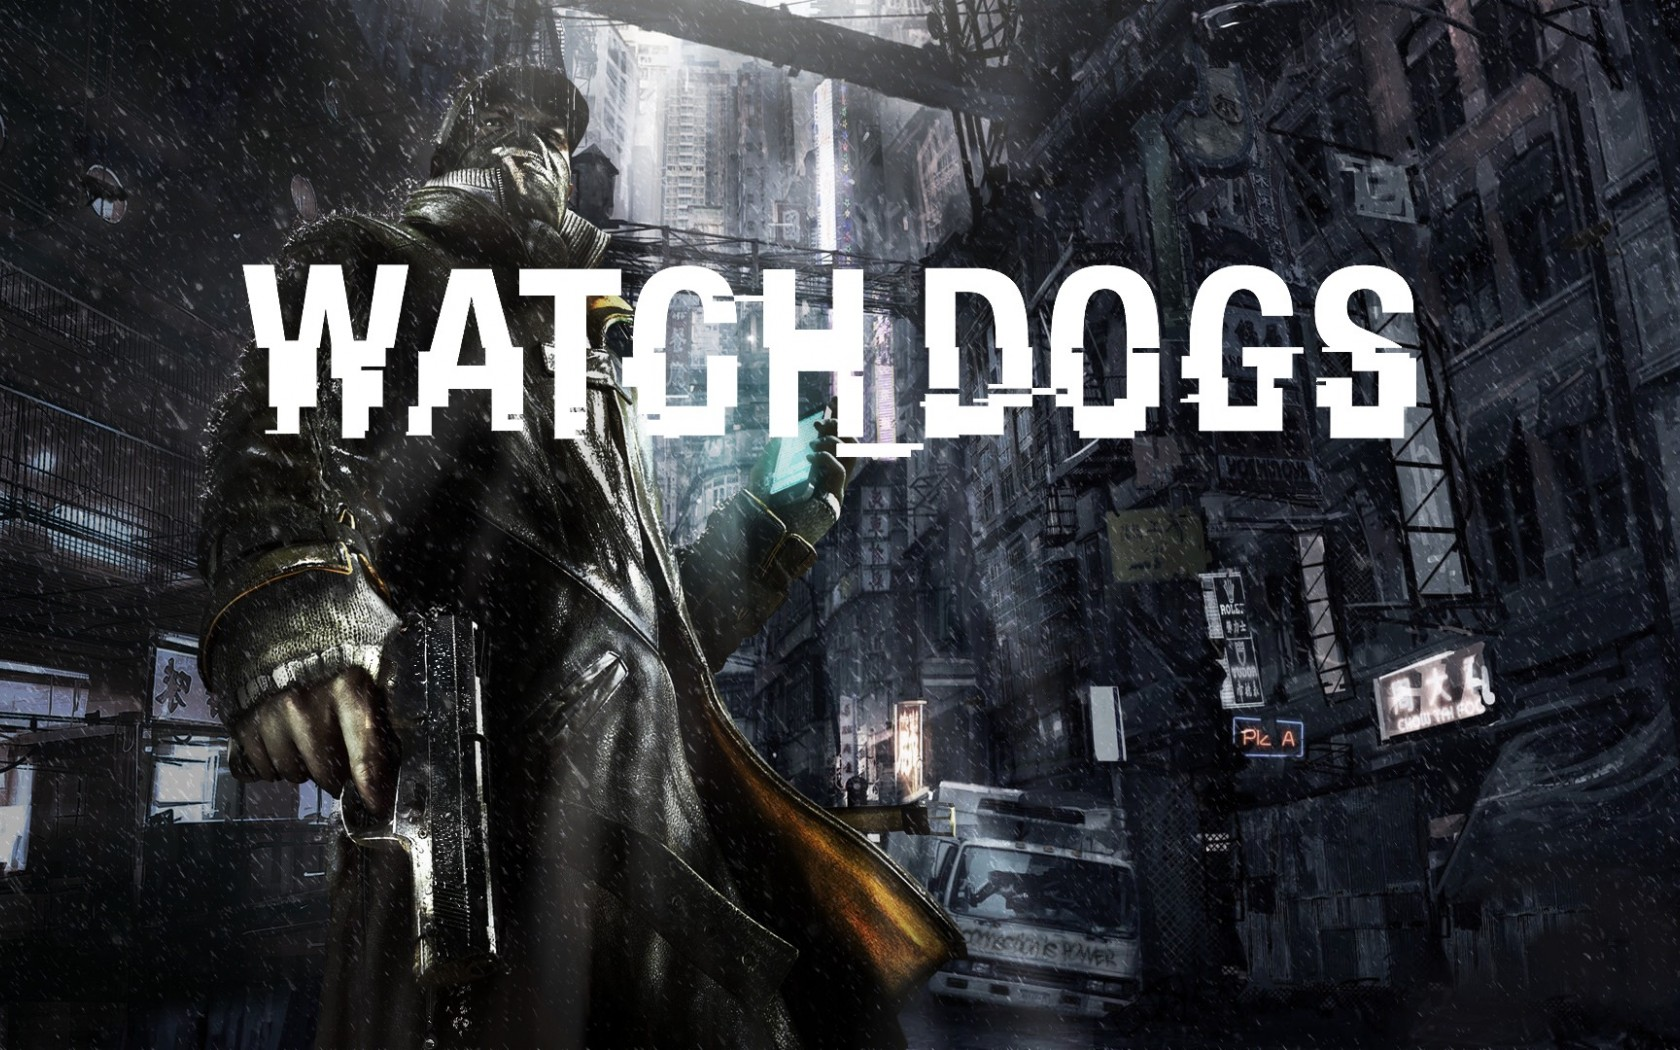 Watch Dogs is set to release for Playstation 3 and 4, Xbox 360, Xbox One and Windows PC in May 2014